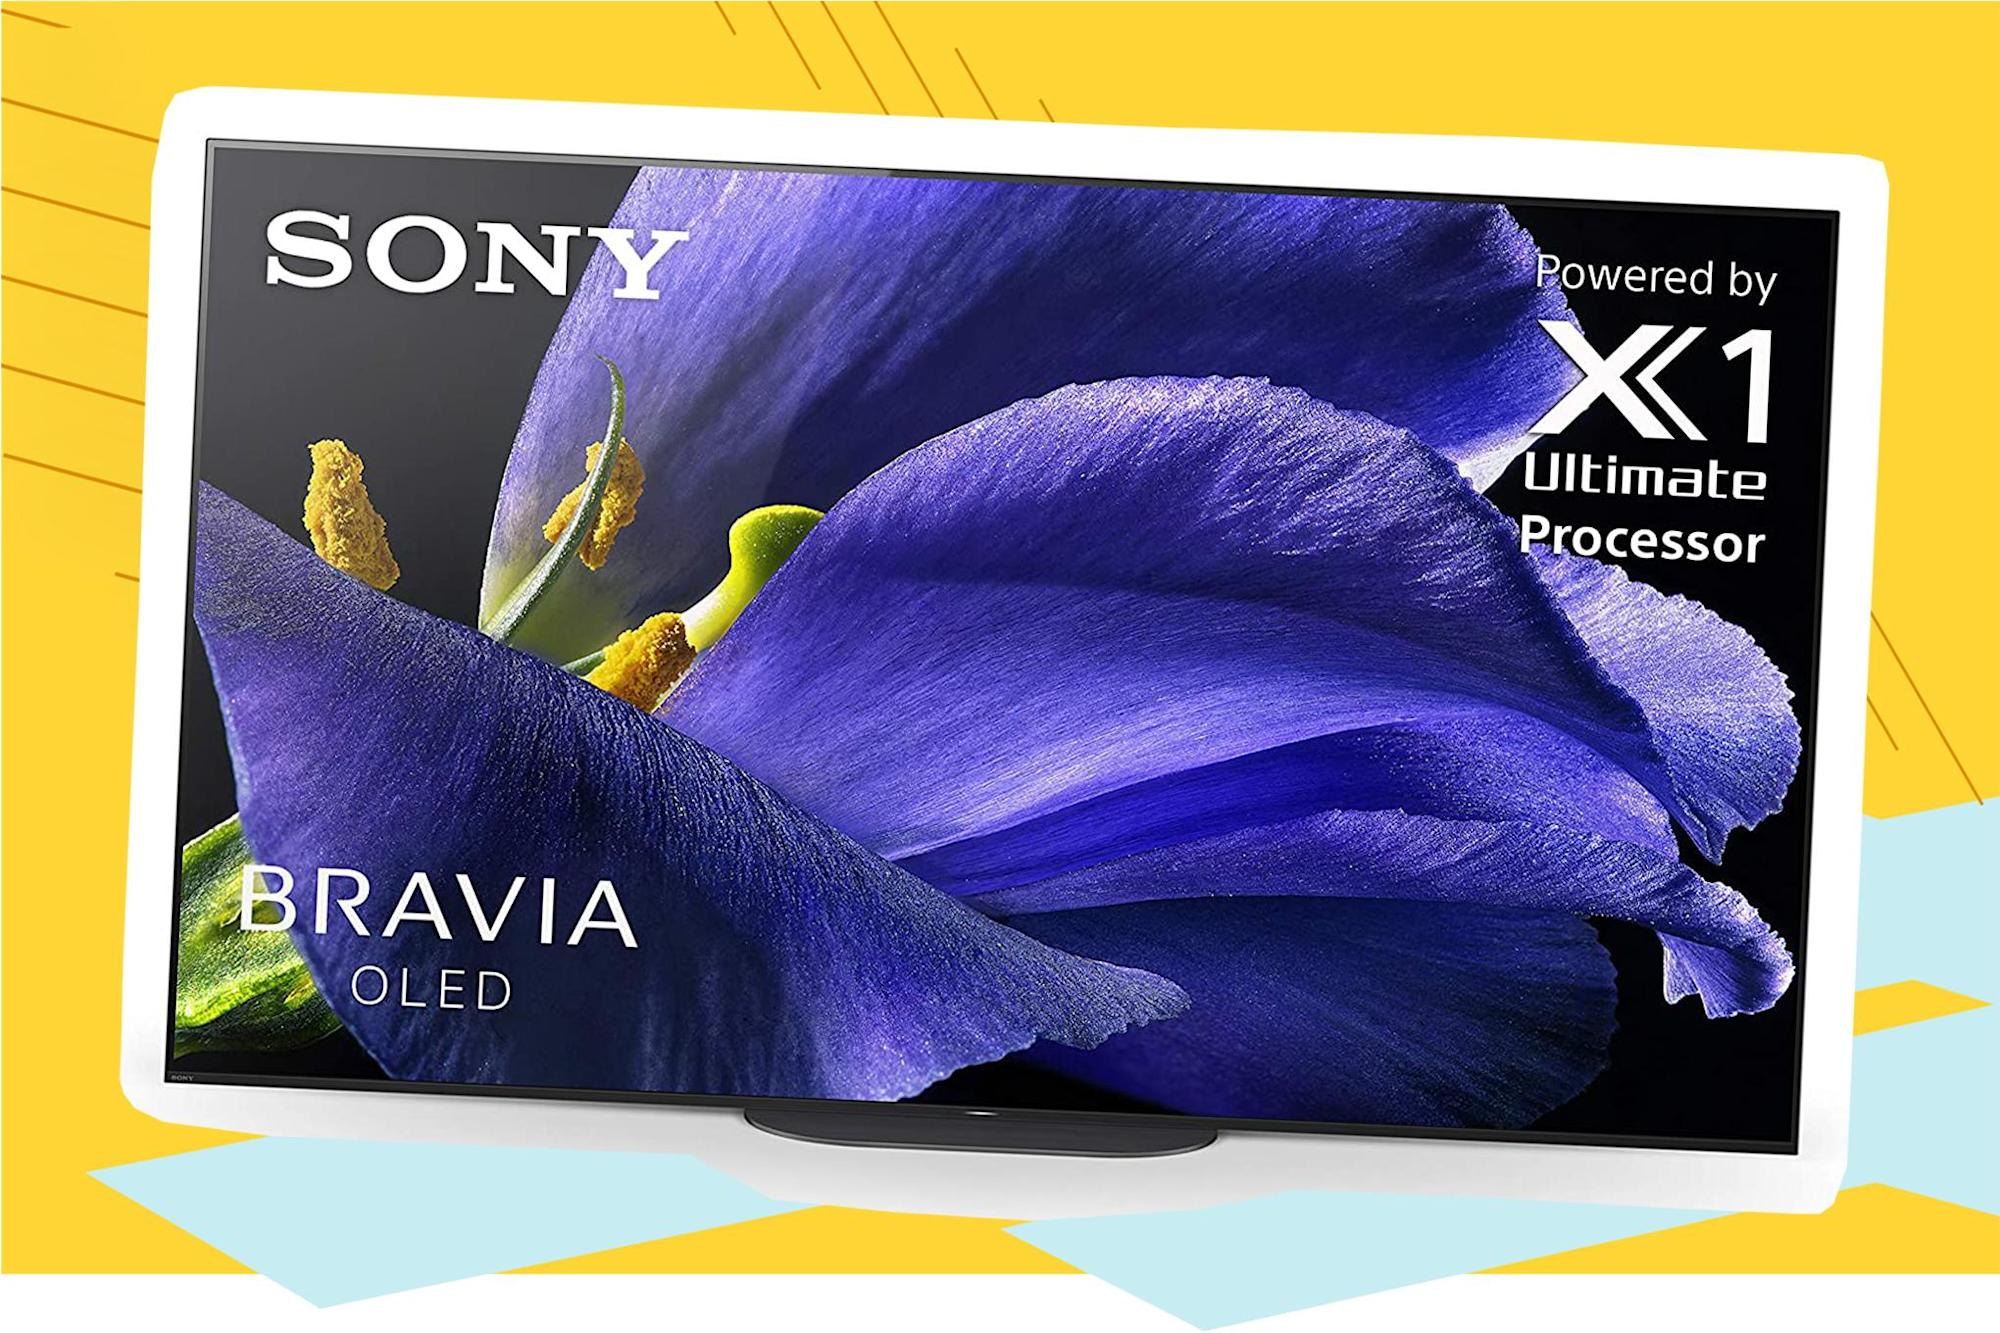 You've Got 5 Hours: Save a Breathtaking $1,500 On This 77-Inch Sony OLED TV - Yahoo Lifestyle